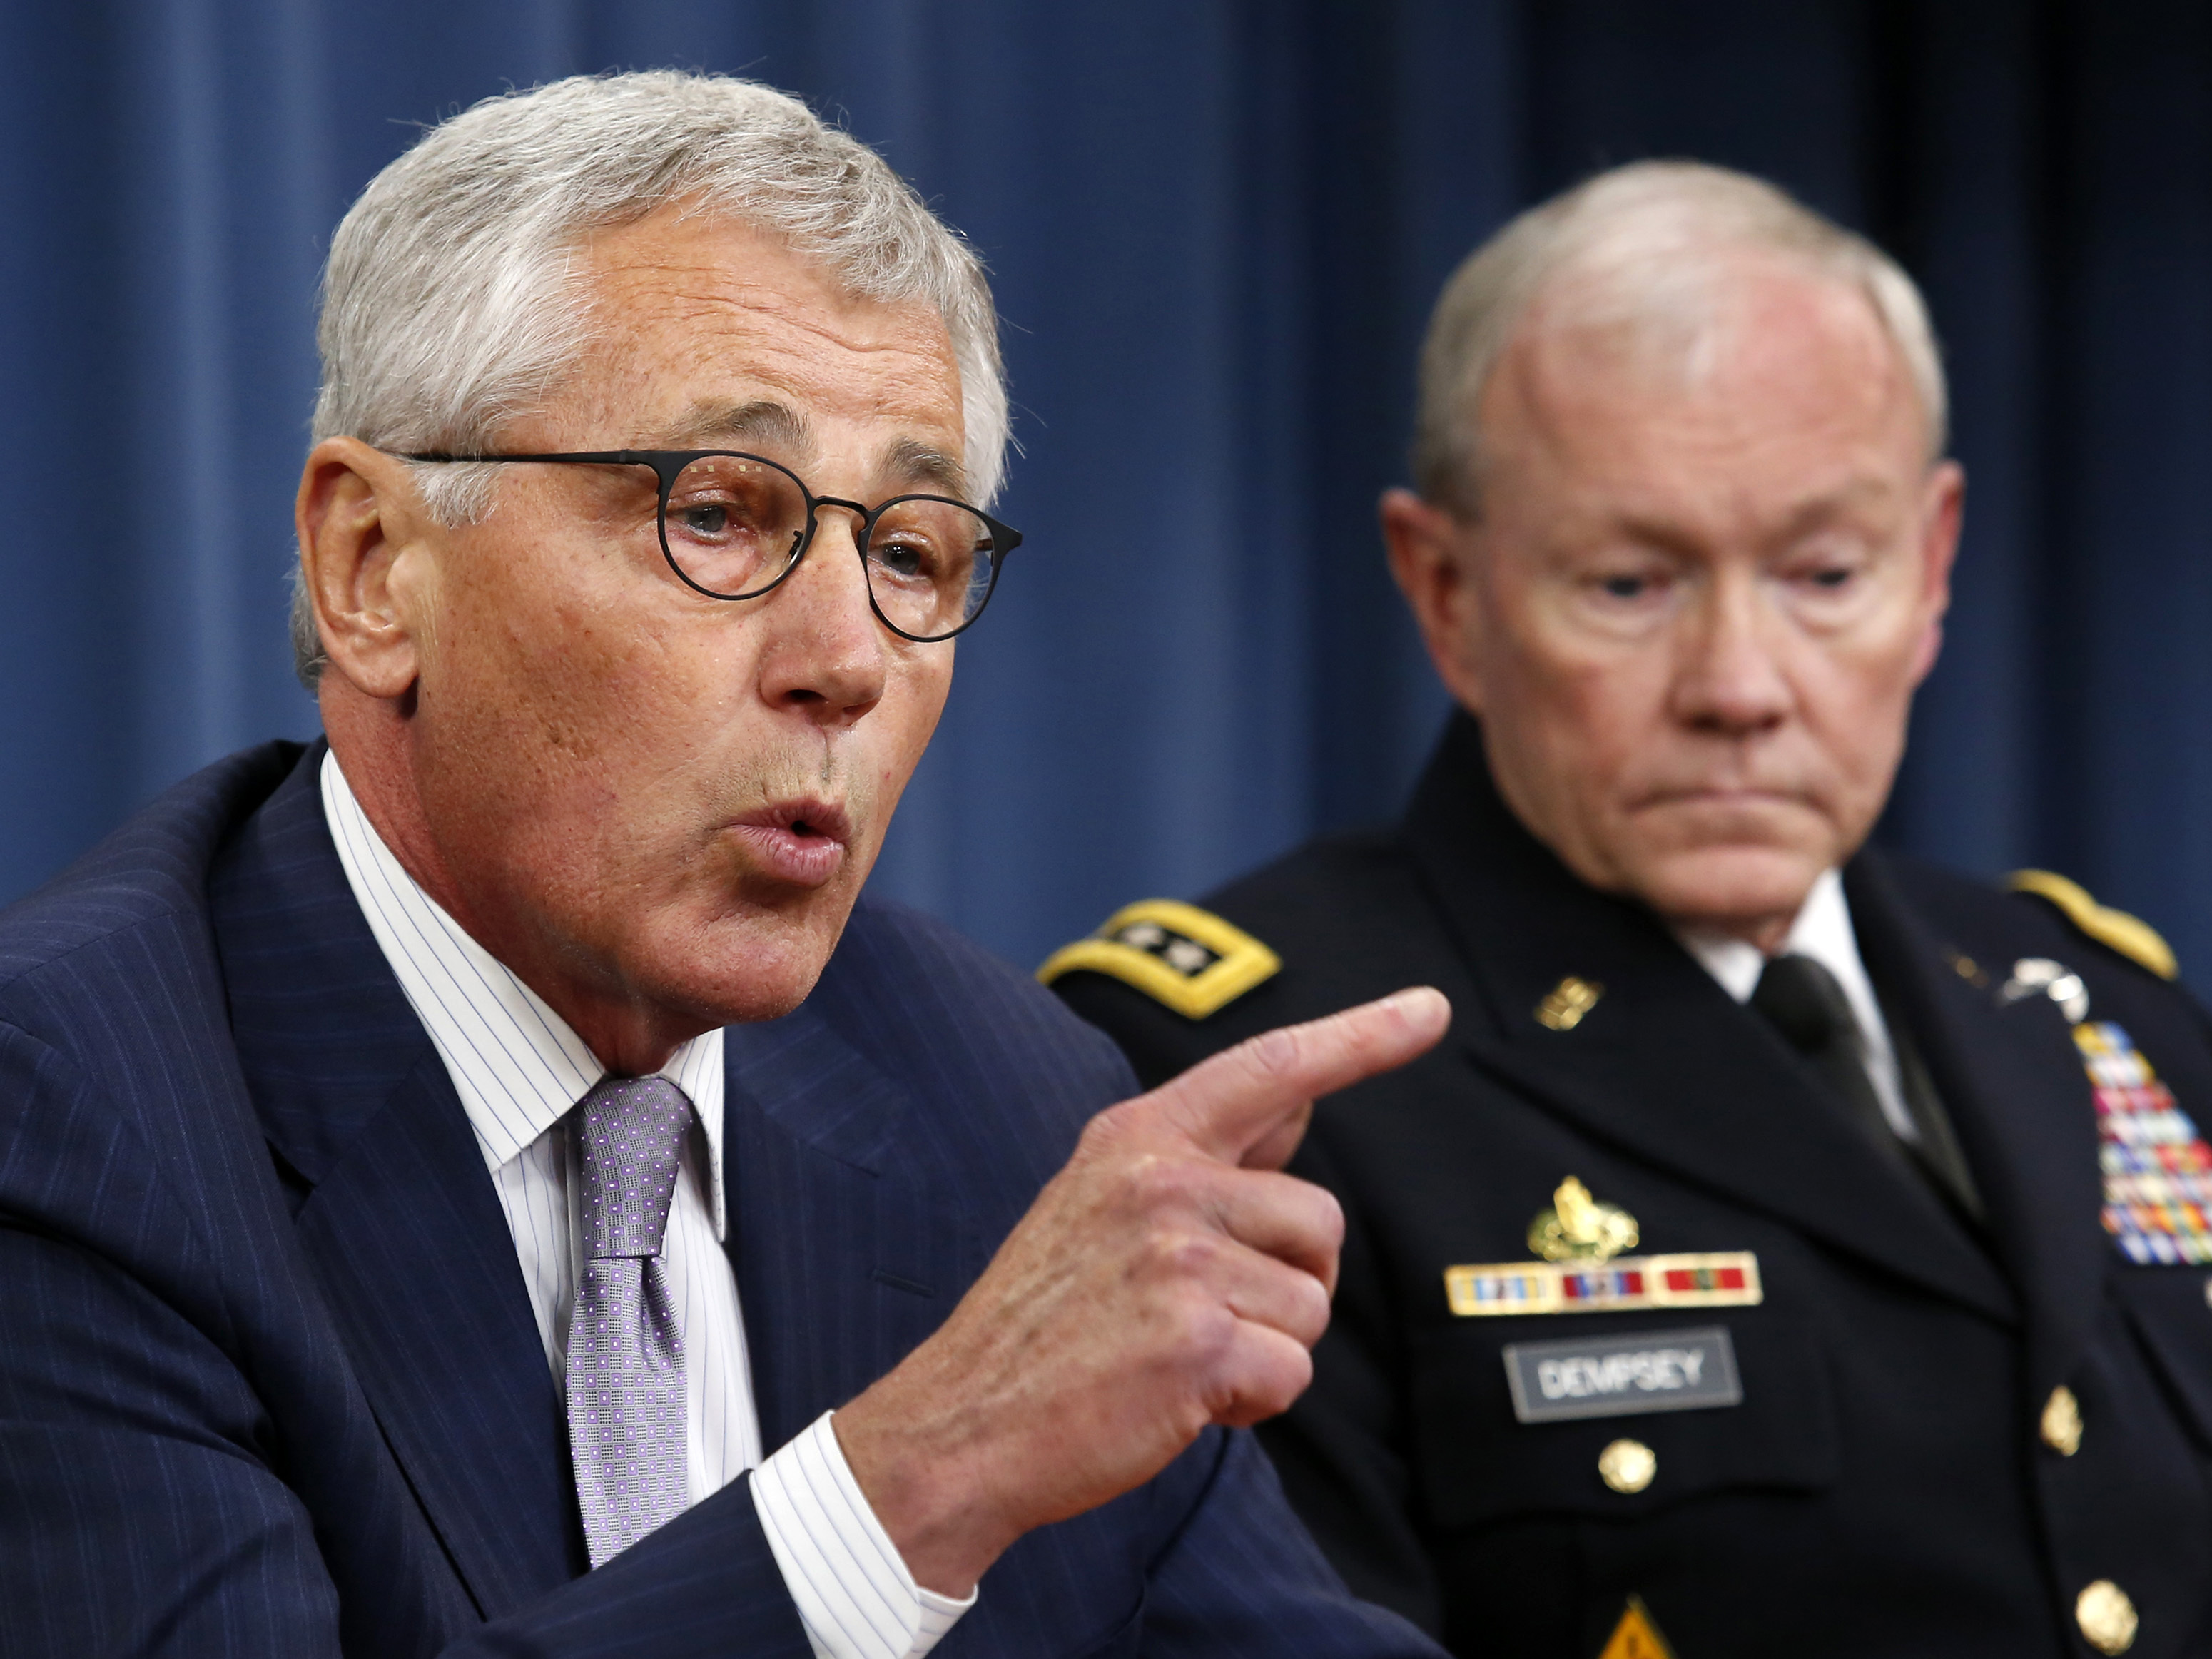 Islamic State 'Beyond Anything We've Seen,' Hagel Says